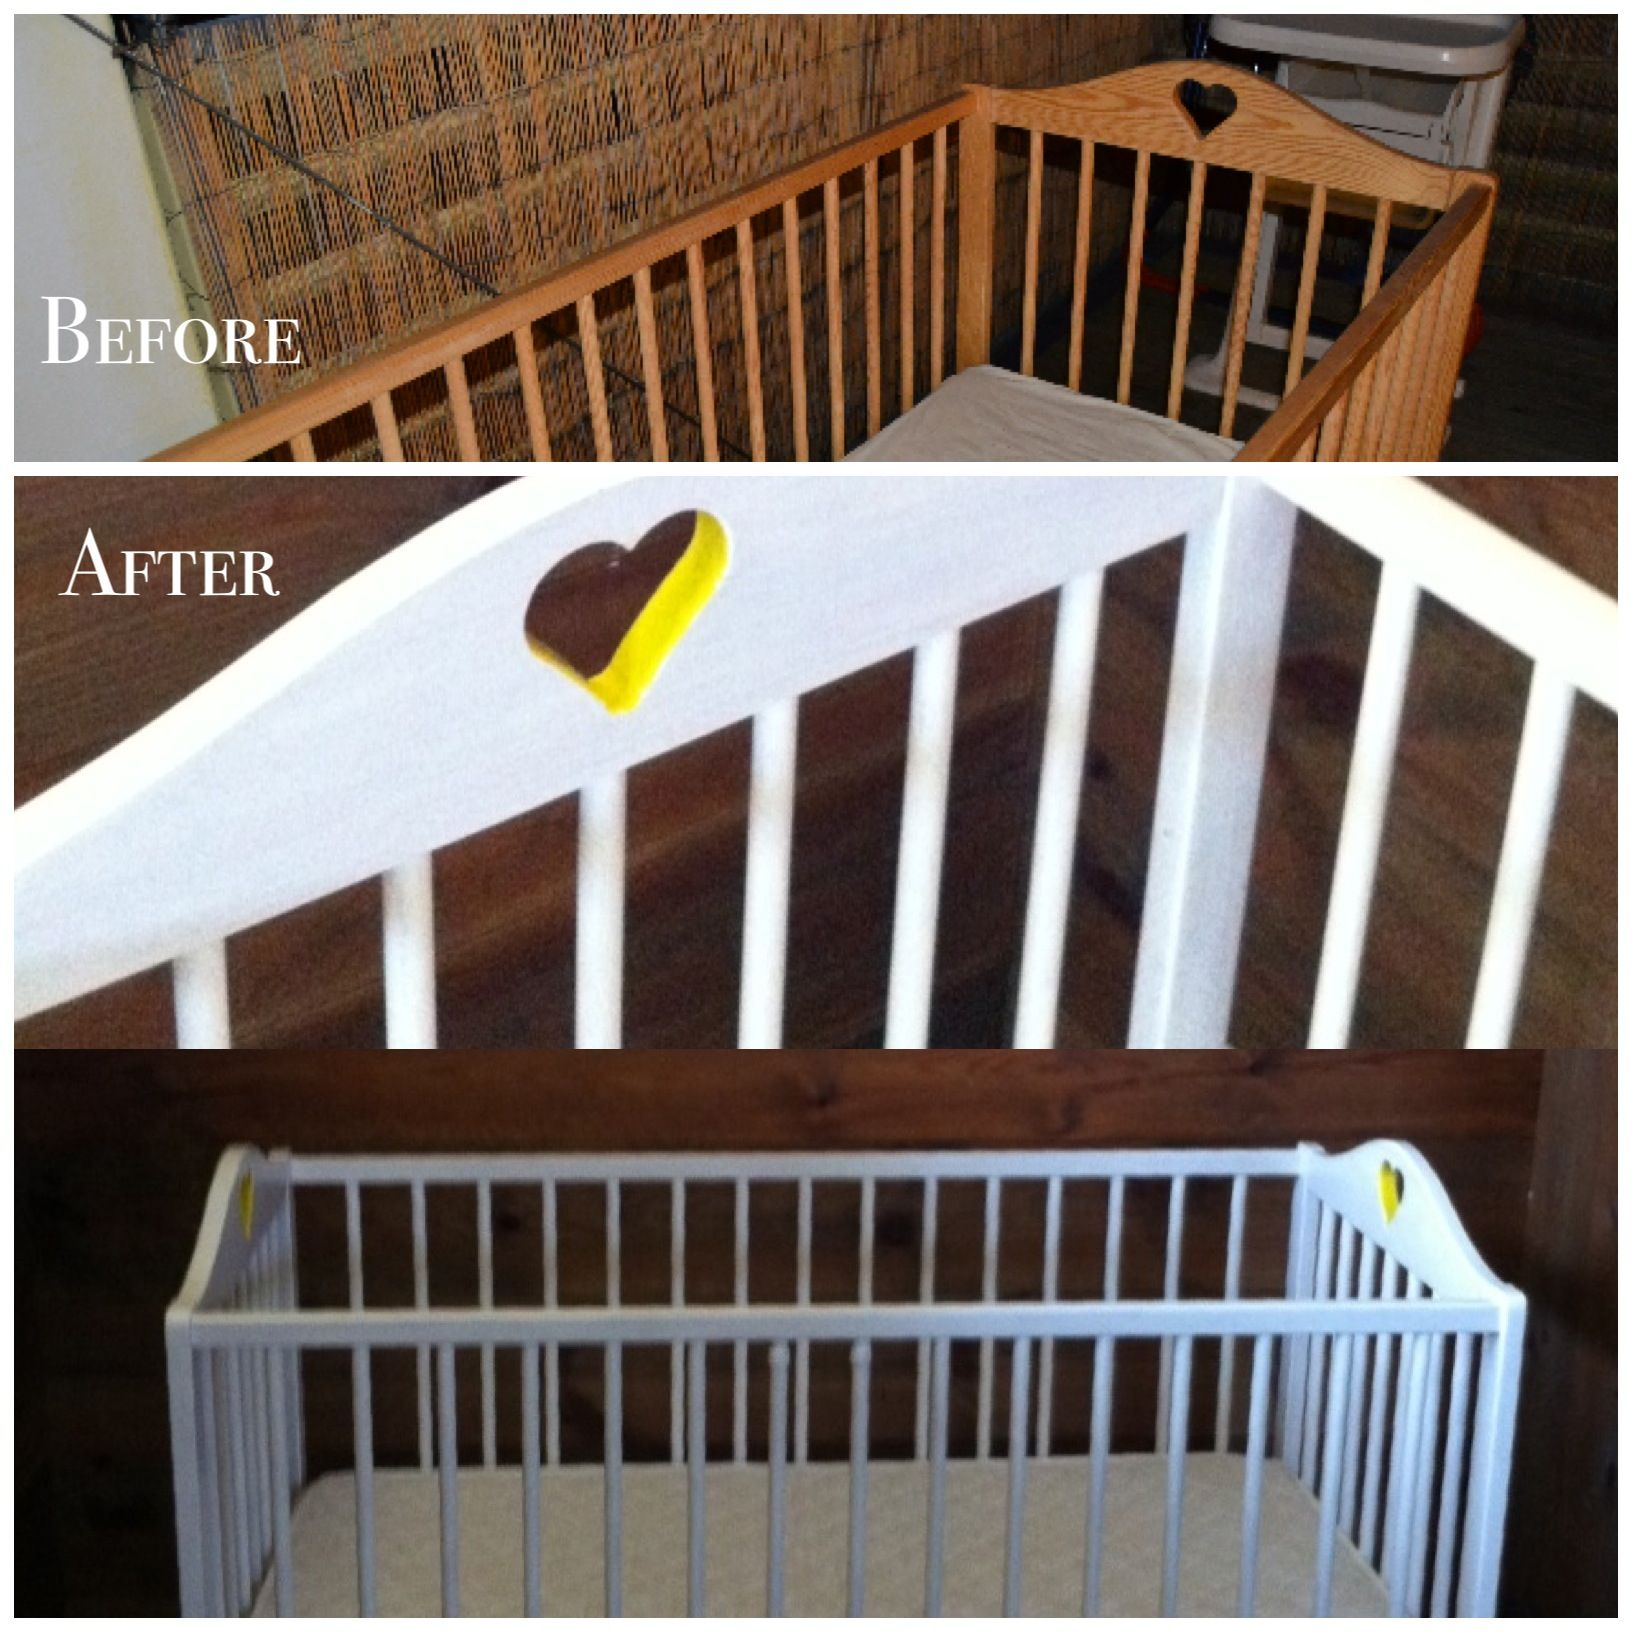 DIY baby crib makeover. Before & after.